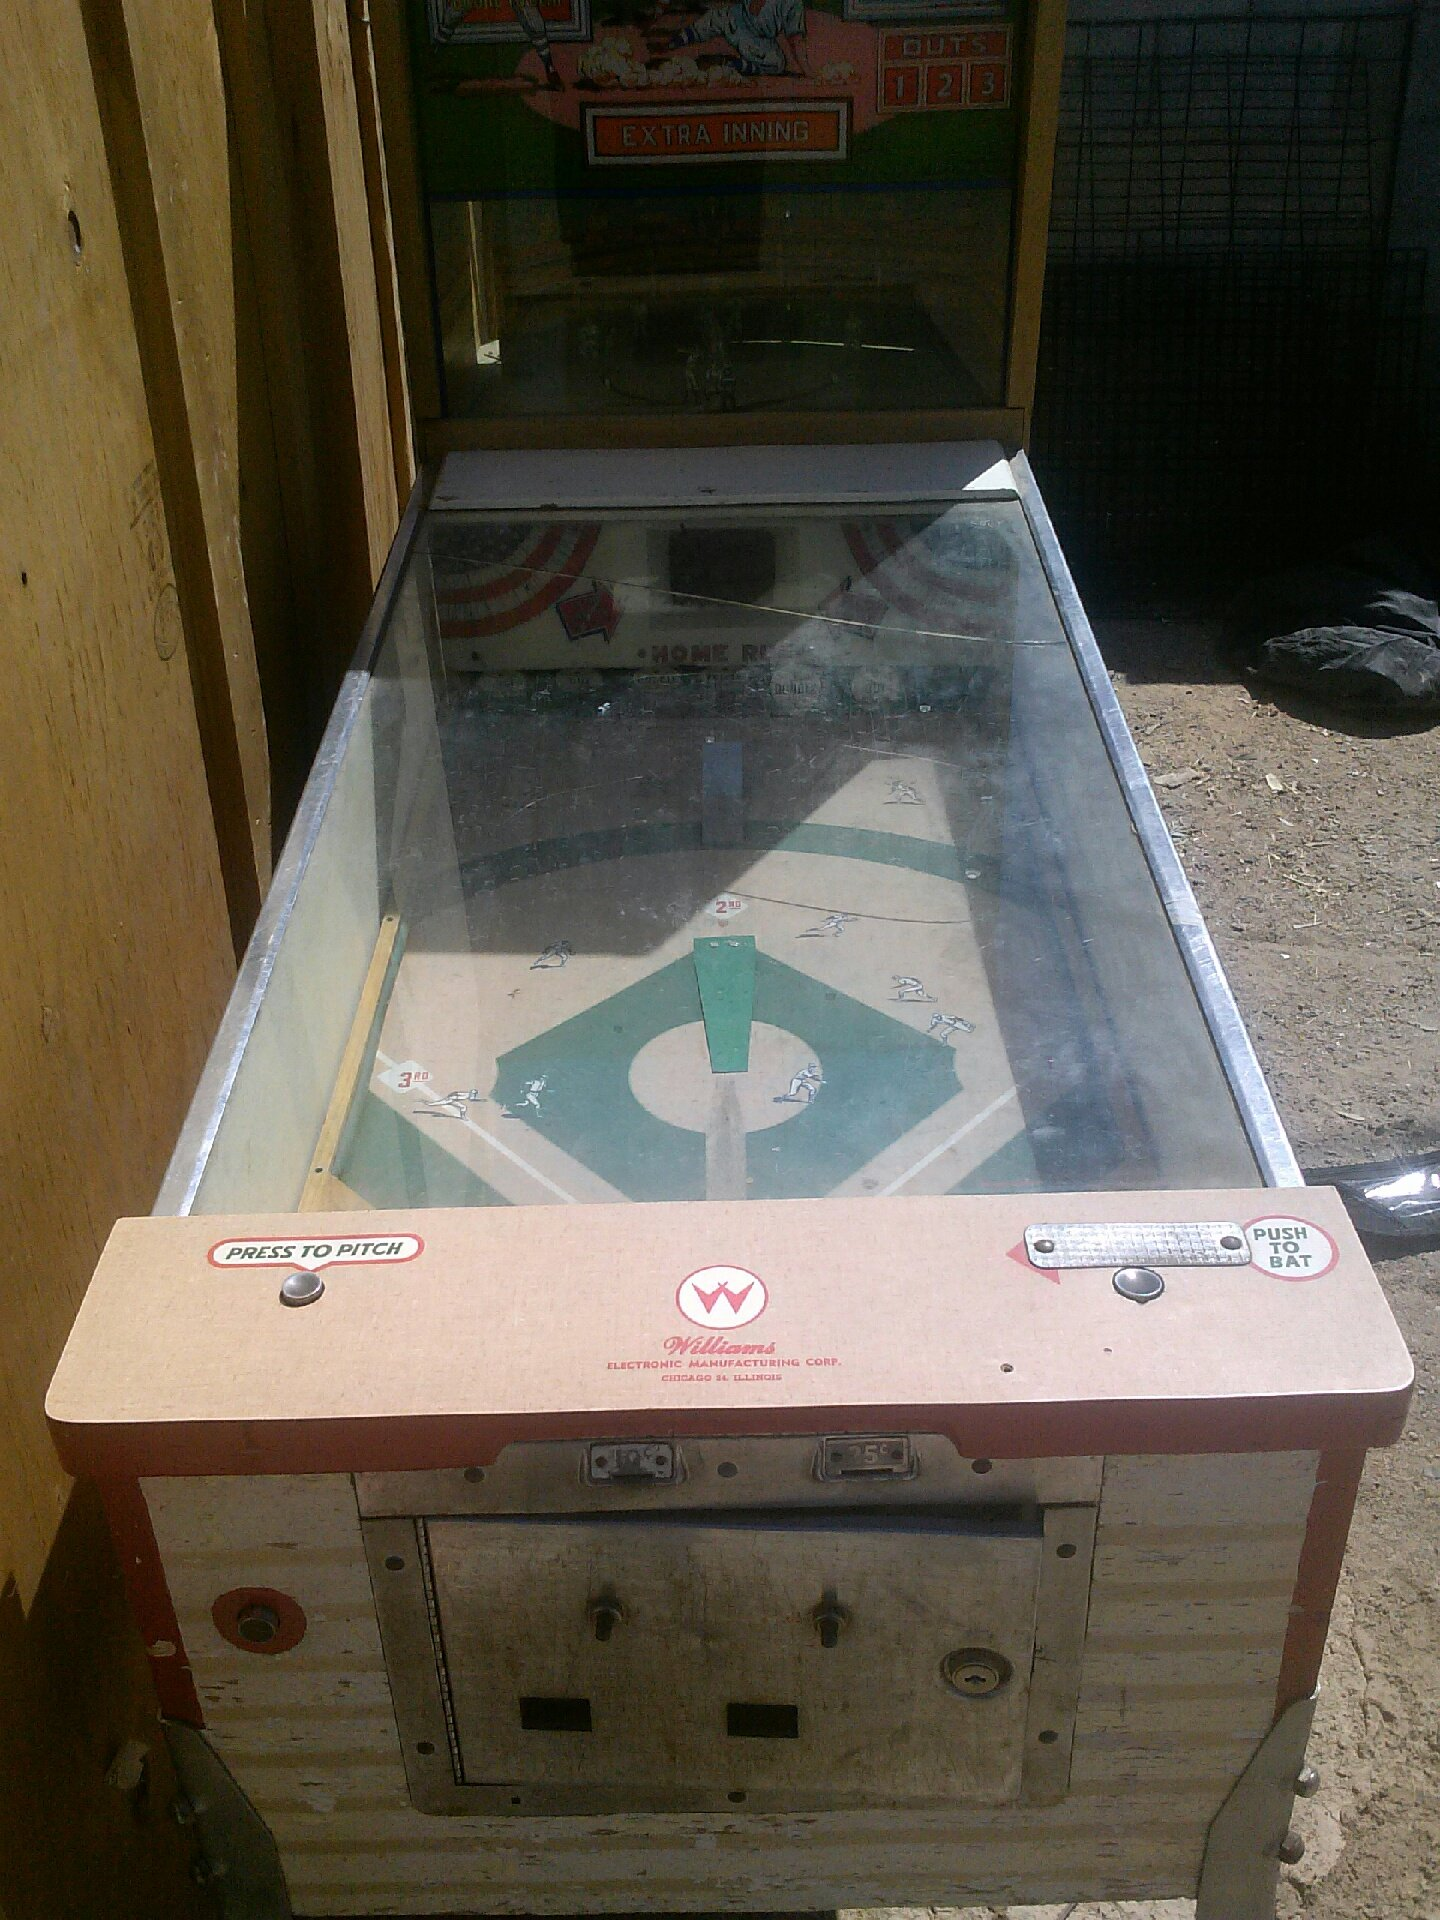 1963 Williams Major League Baseball Pitch and Bat for sale